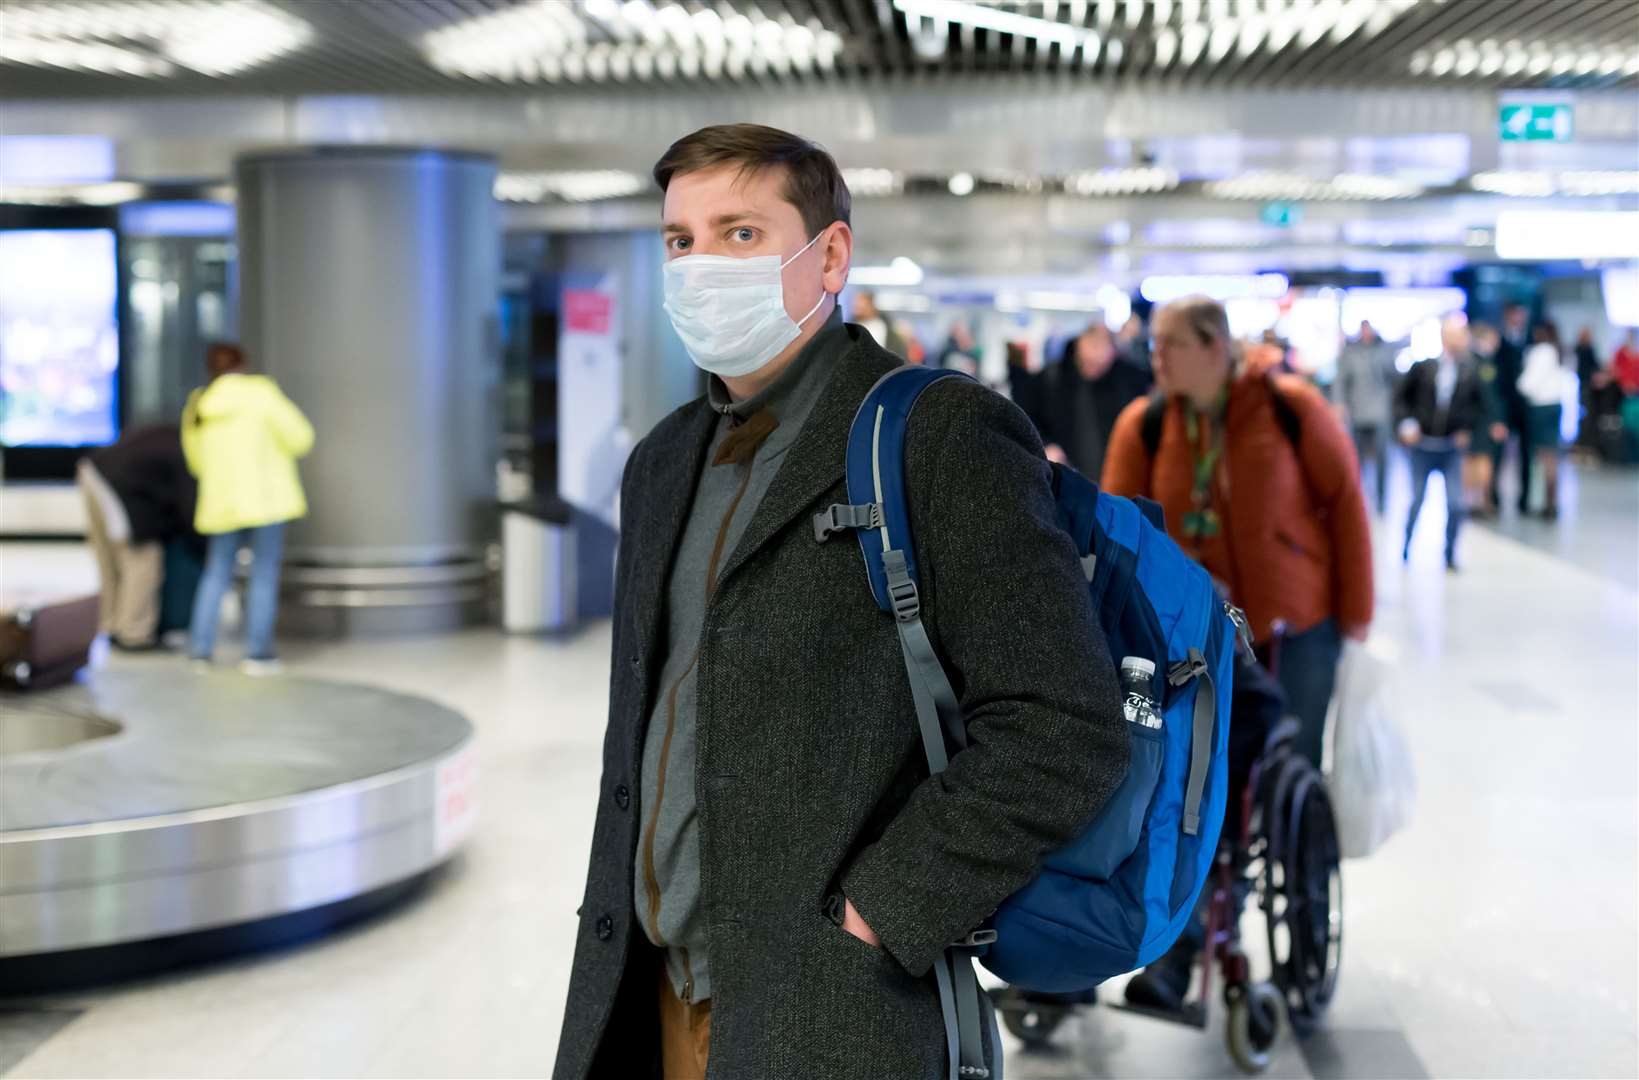 Coronavirus and lockdowns at the start of the year mean that many travellers are only now learning more about post-Brexit travel rules